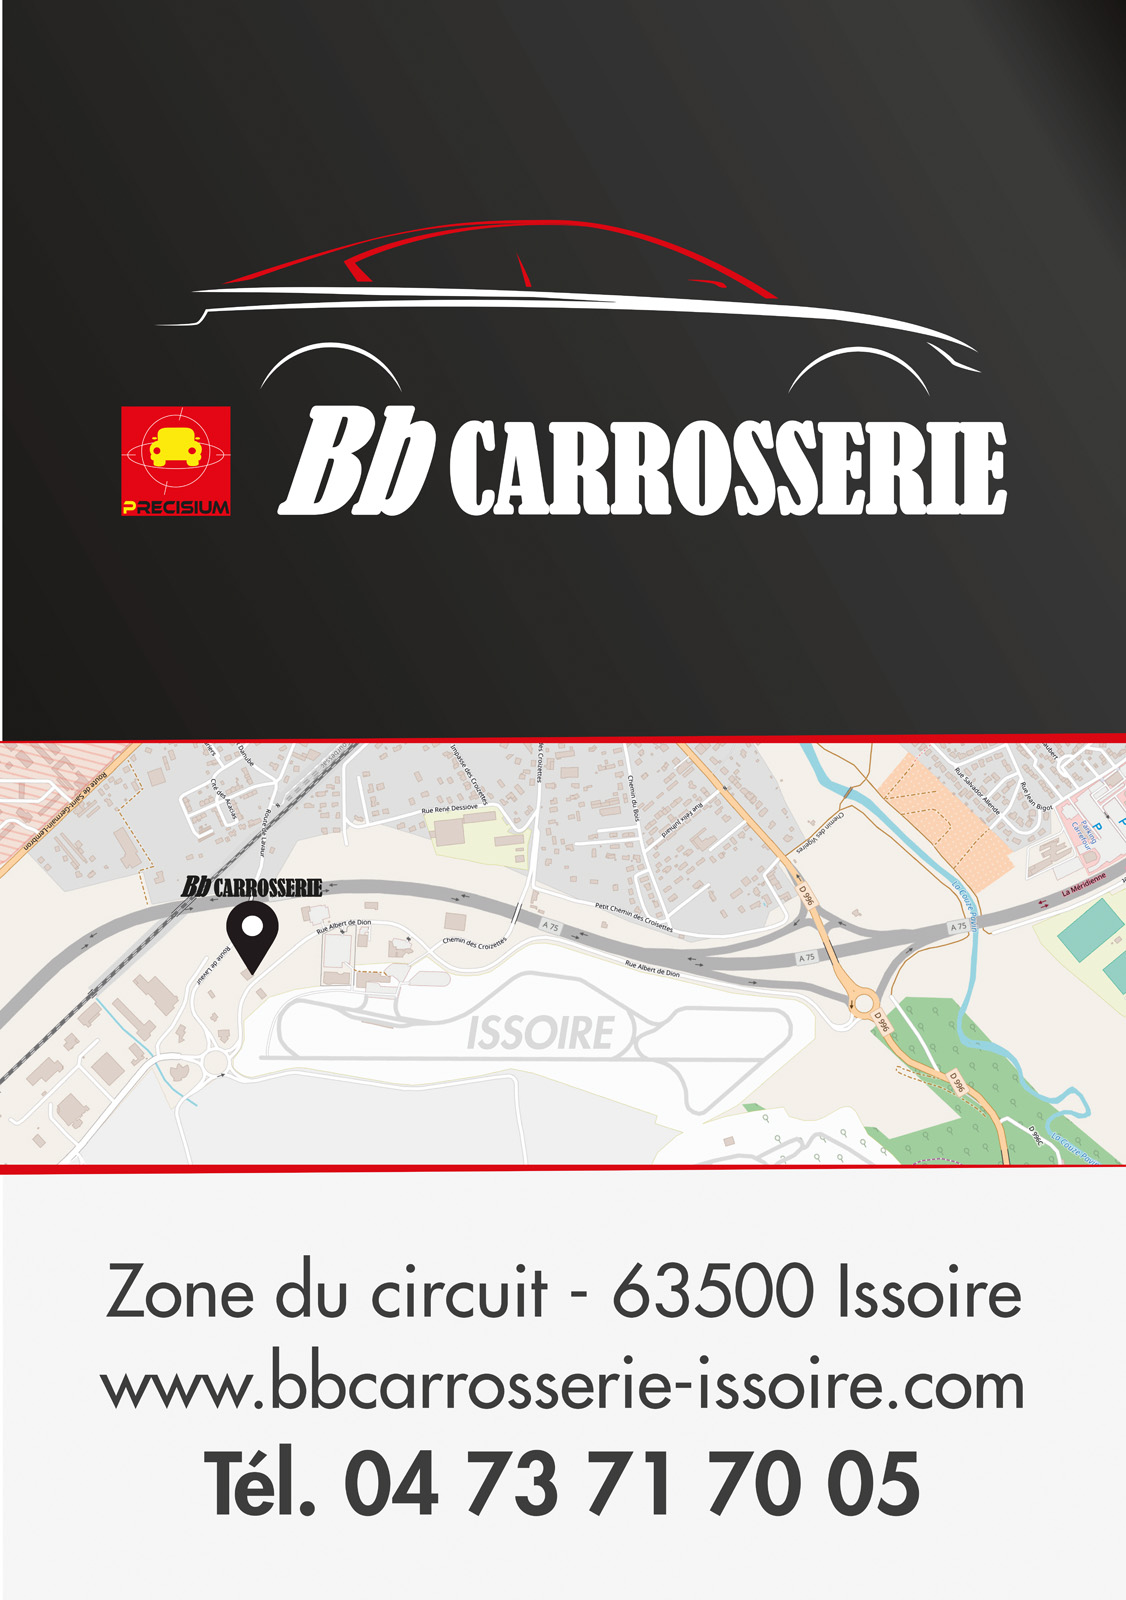 logo BB Carrosserie